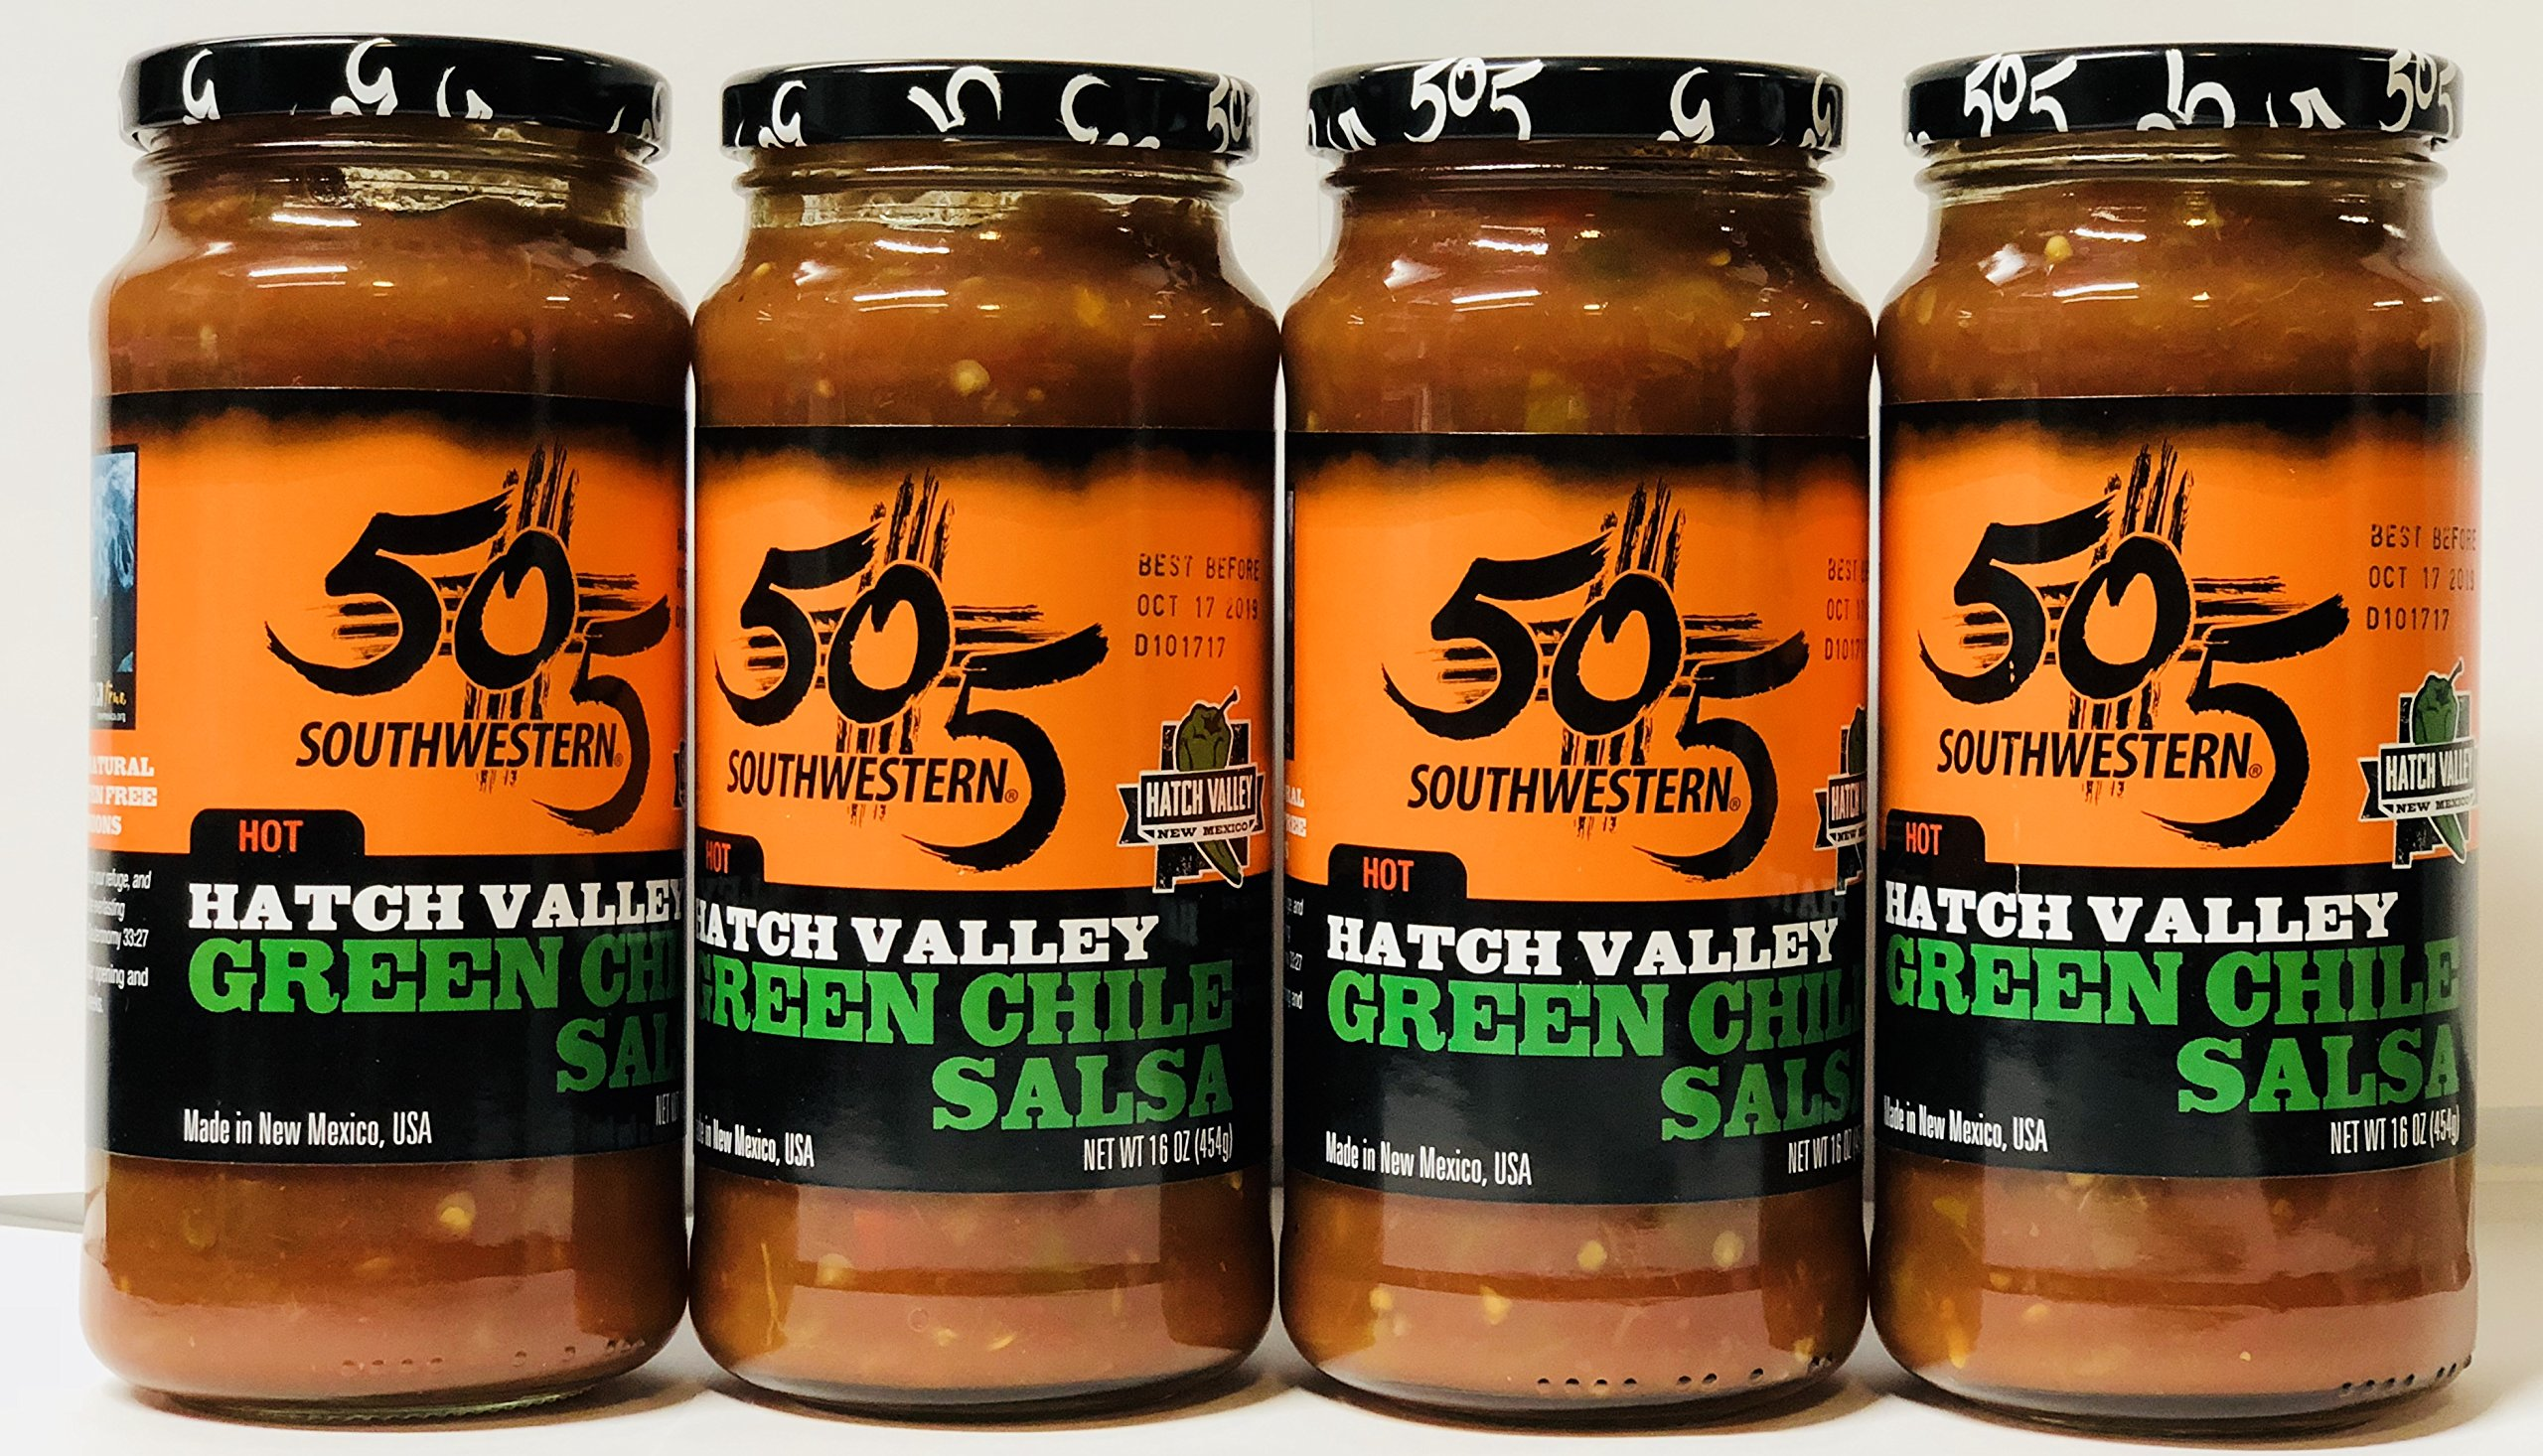 505 southwestern hatch valley hot green chile salsa 16 oz. (pack of 4)